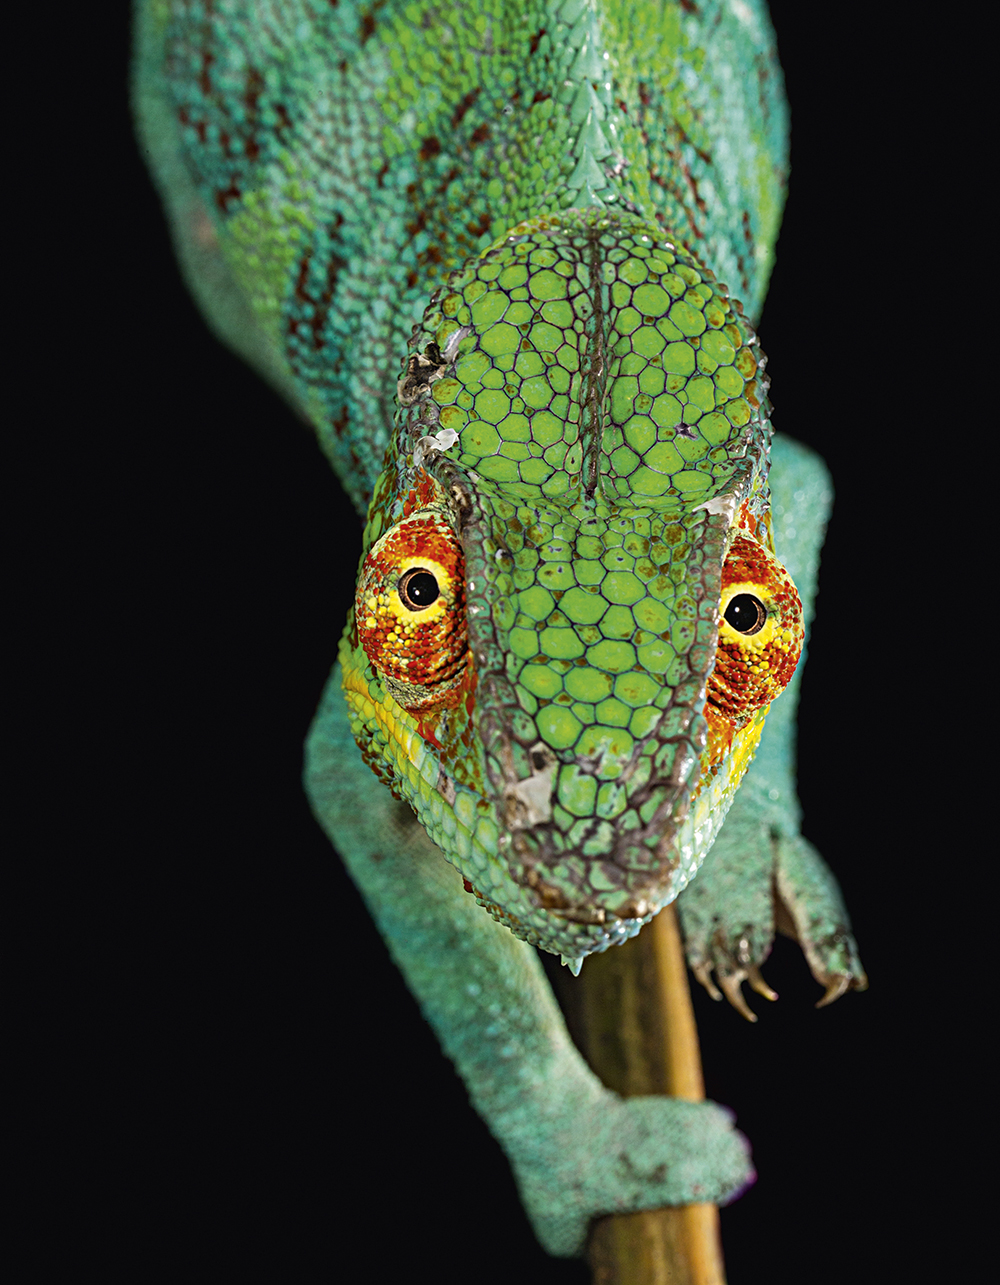 A blue morphotype of panther chameleon (Furcifer pardalis) endemic to the area around Ambanja, Madagascar. It is very rare in the wild due to collecting for the exotic pet trade  Photo © 2017 Christian Ziegler. All rights reserved. www.christianziegler.photography